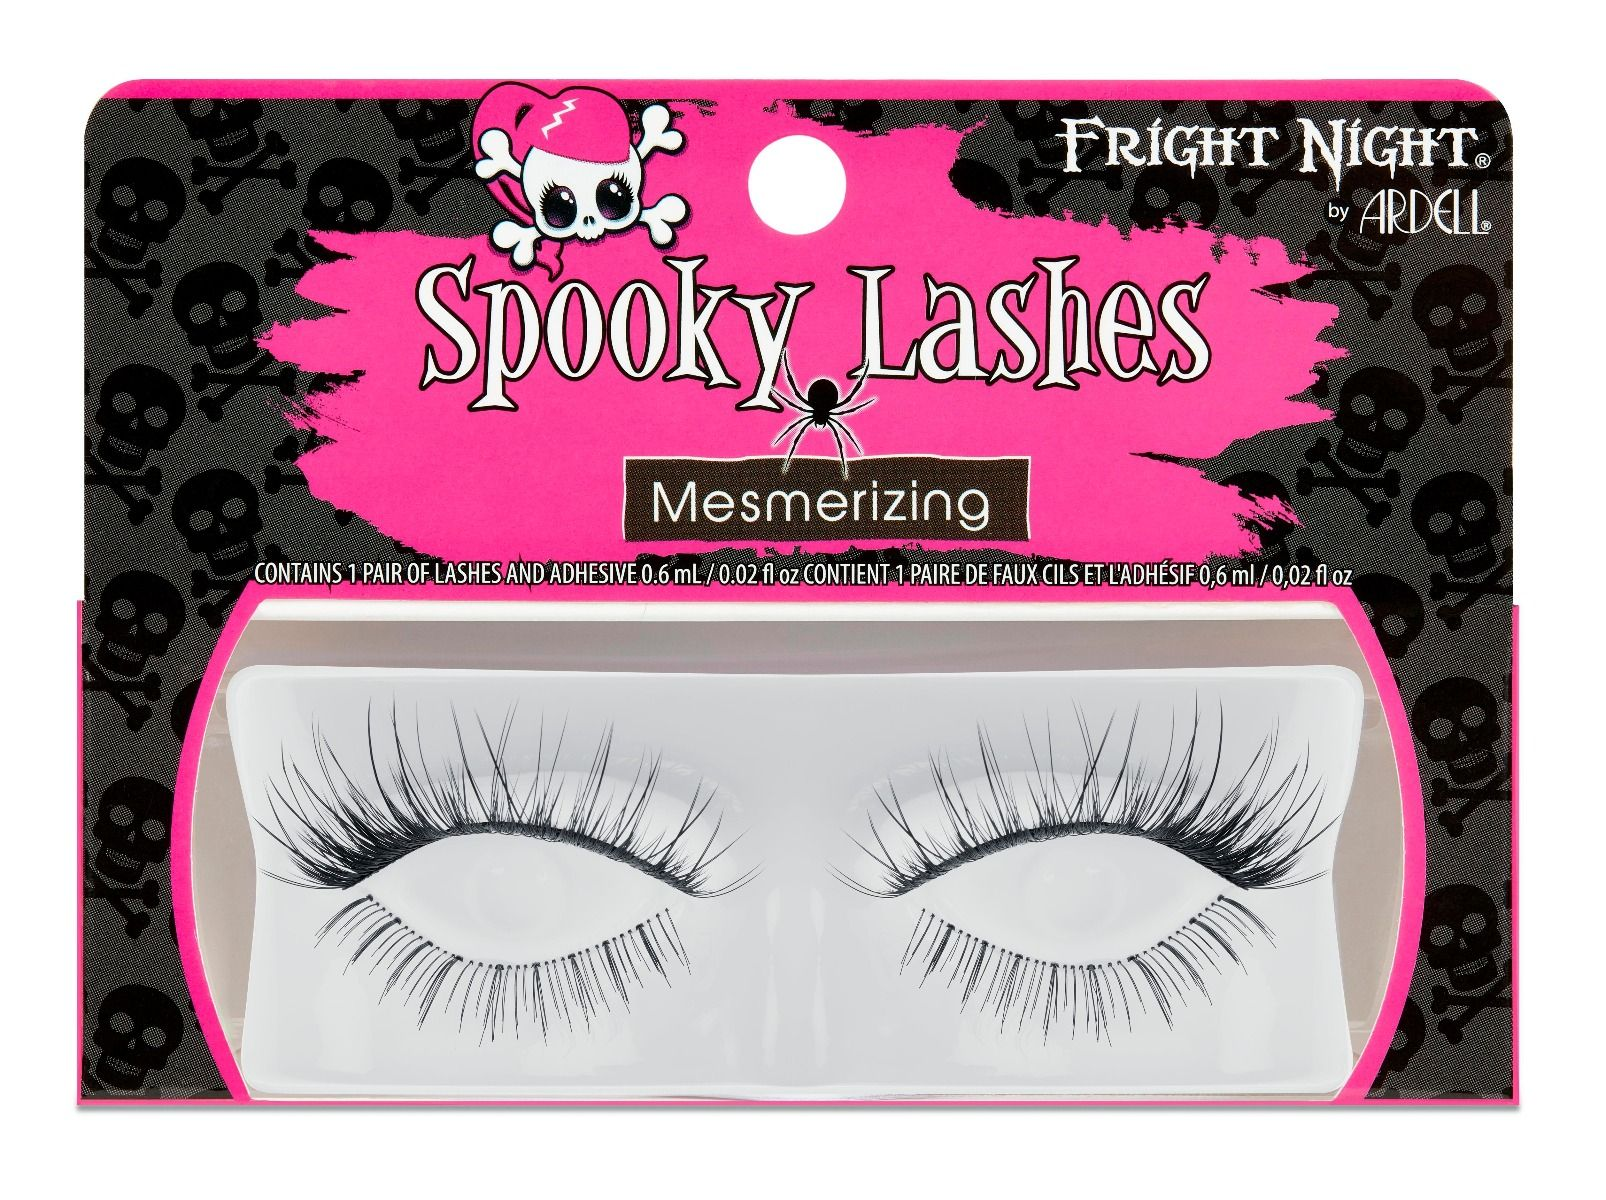 Ardell Fright Night Spooky Lashes - MESMERIZING